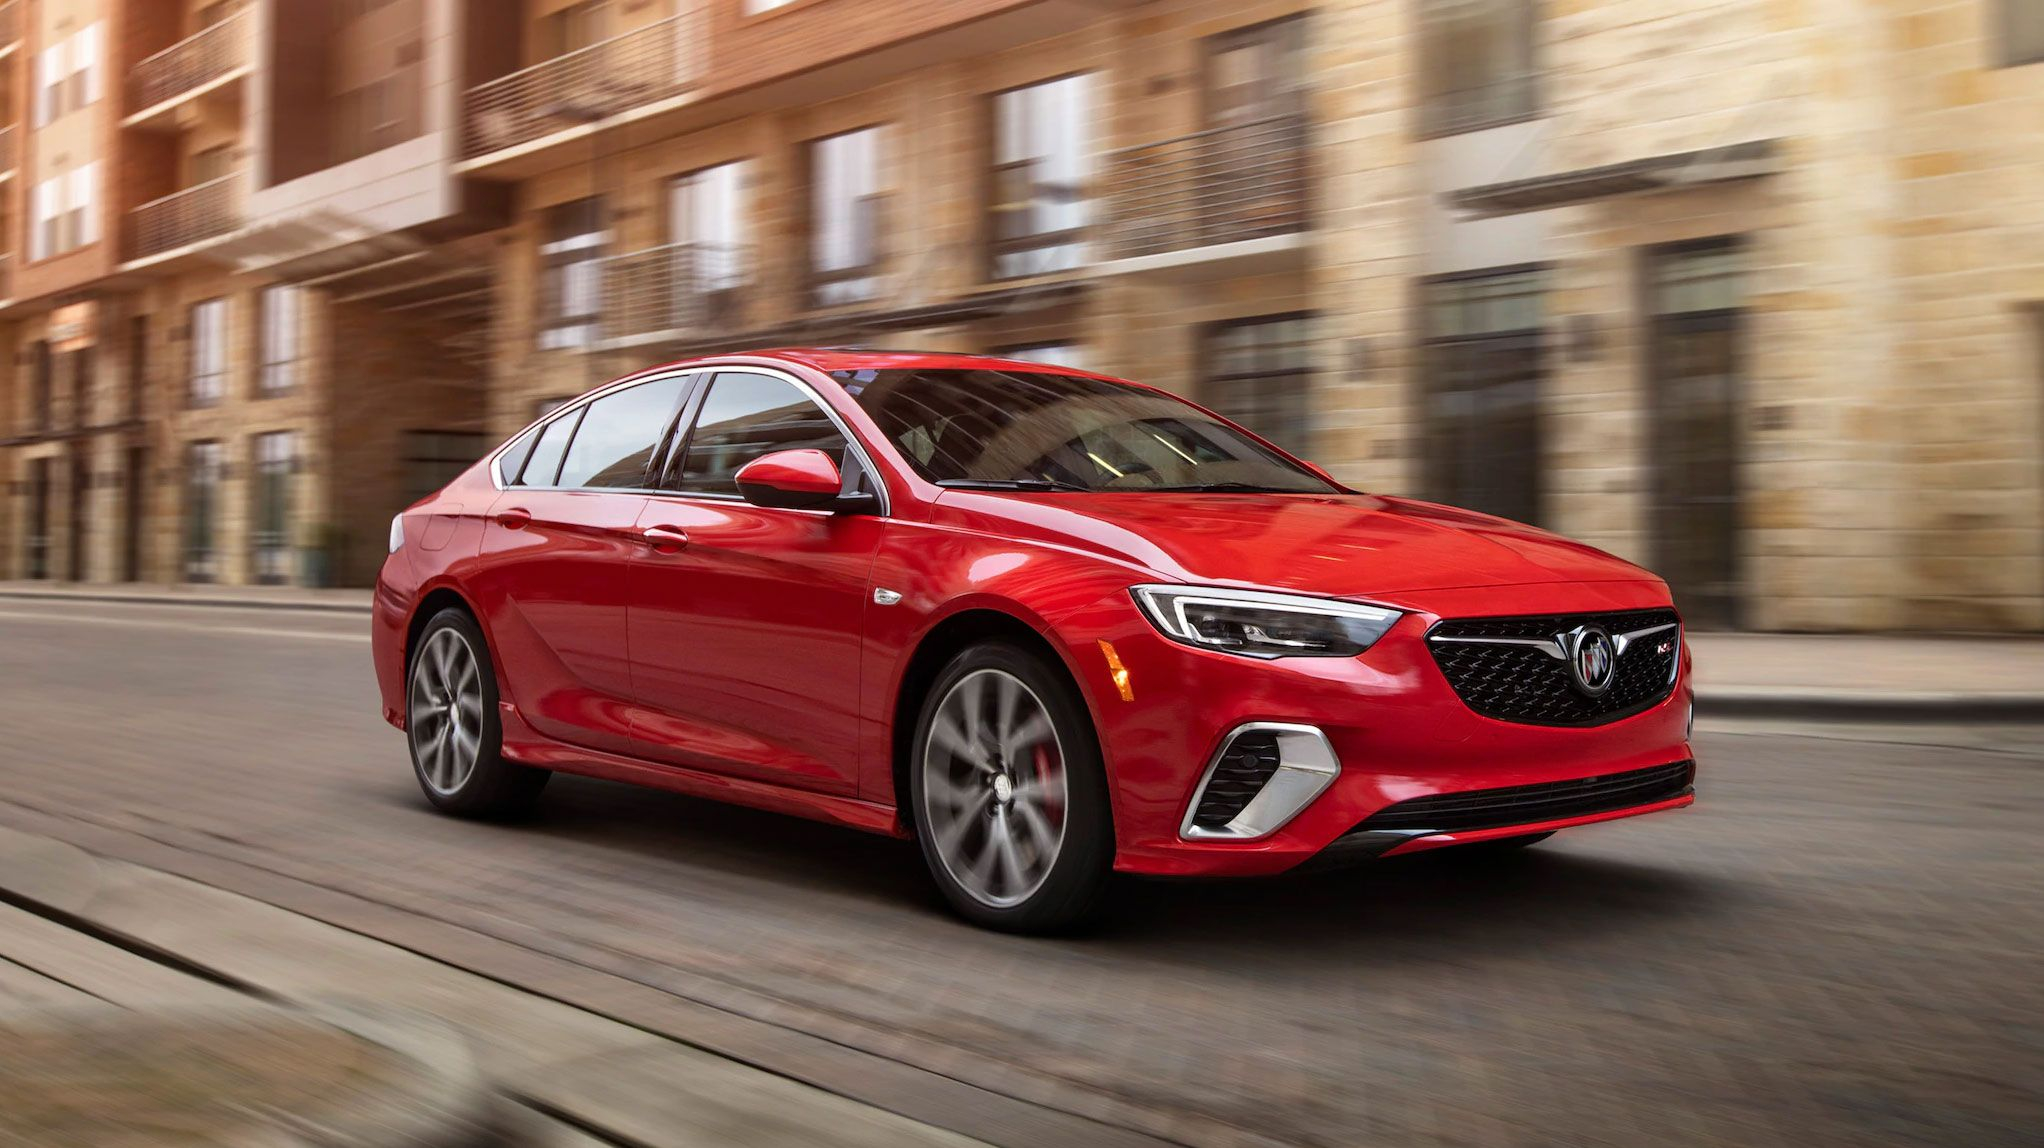 2020 Buick Regal Gs Review, Pricing, And Specs 2021 Buick Regal Gs Colors, Changes, Horsepower